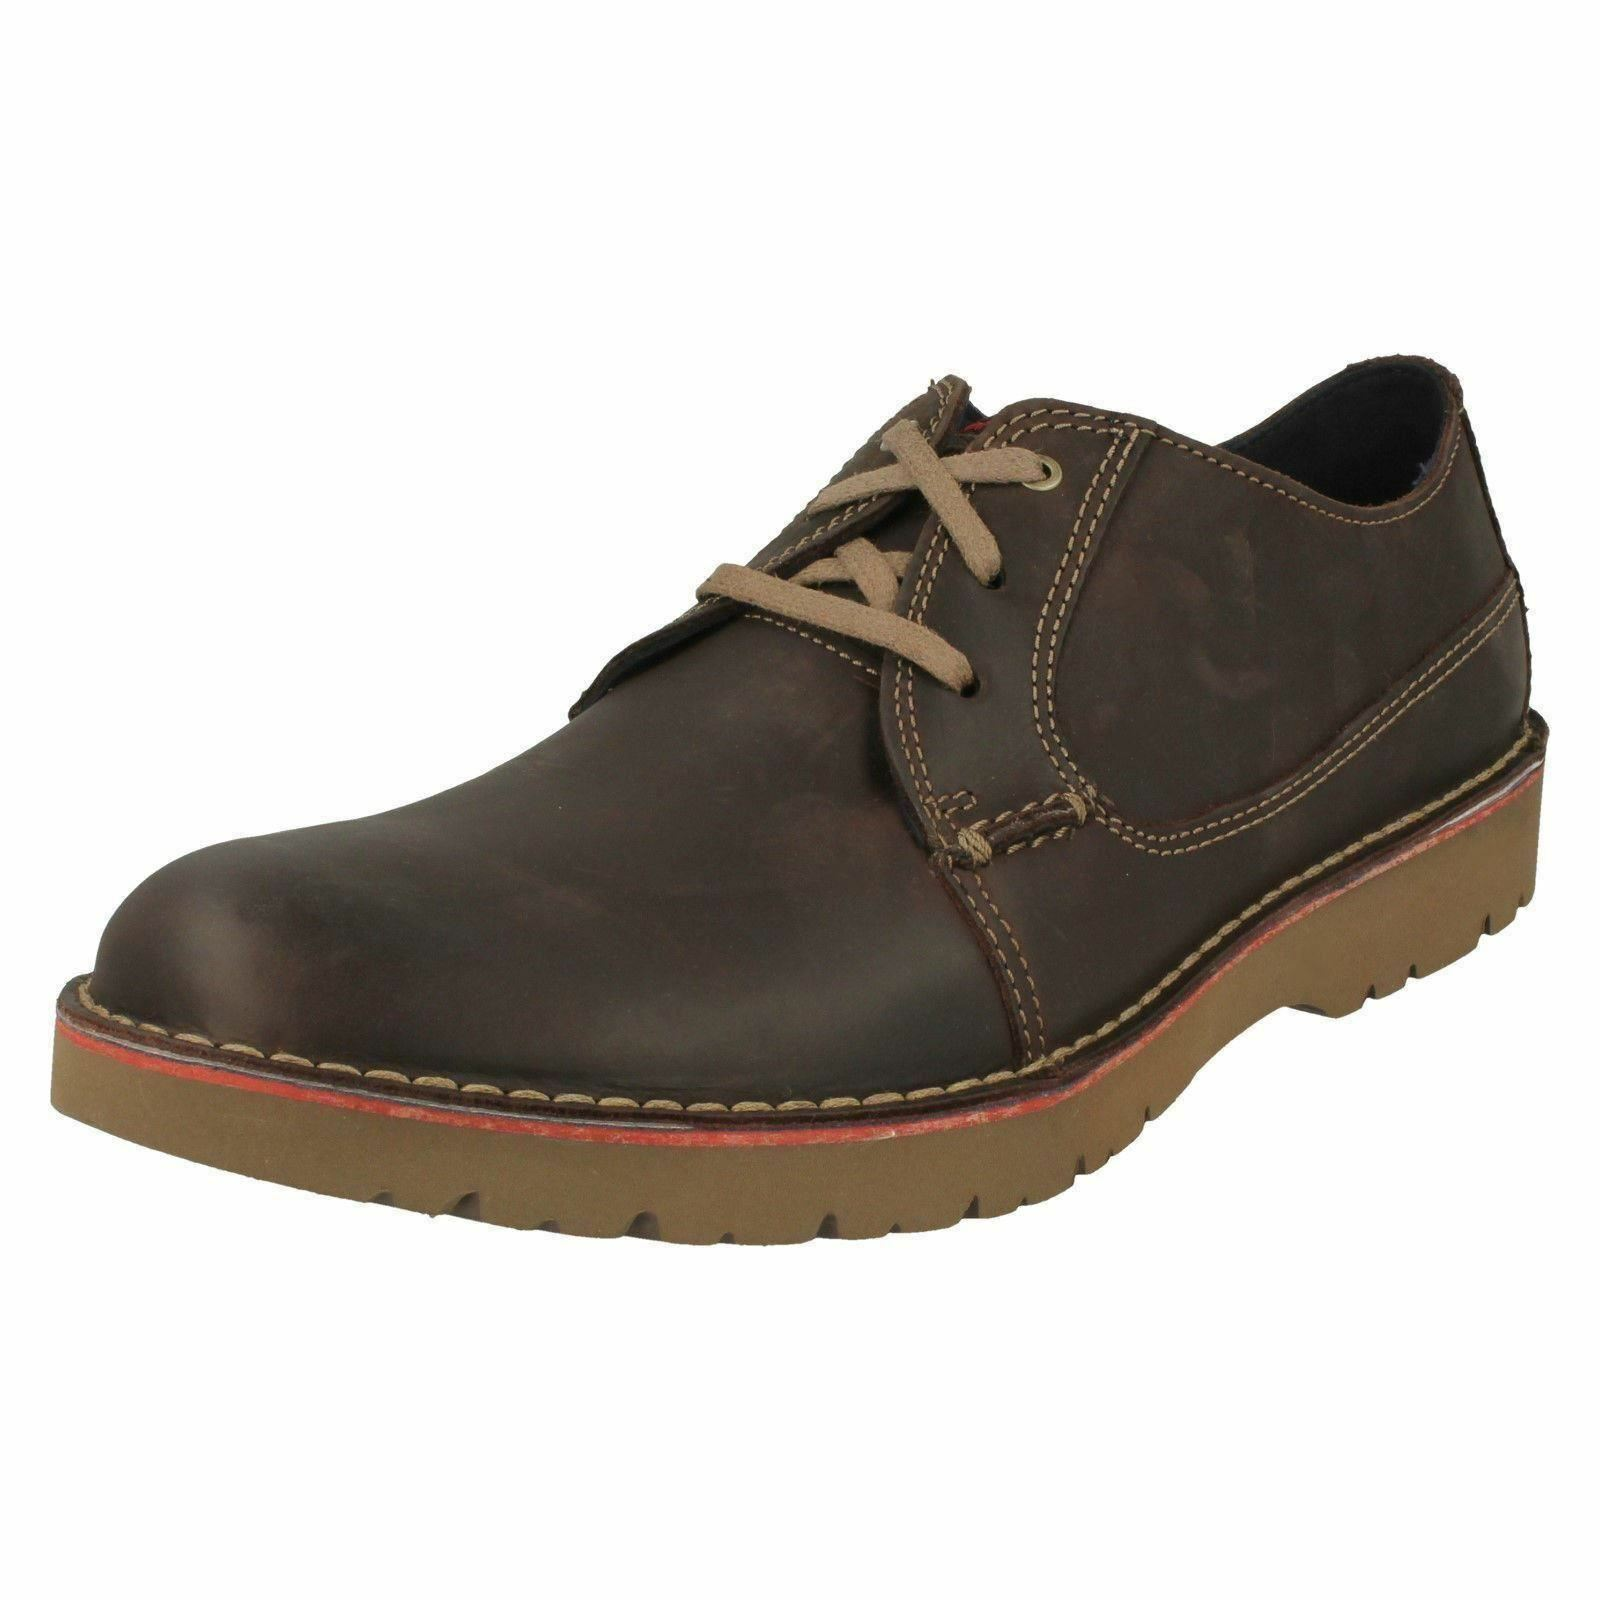 Herren Clarks Clarks Clarks Vargo Plain Casual Leder Lace Up Schuhes G fitting 2e1497